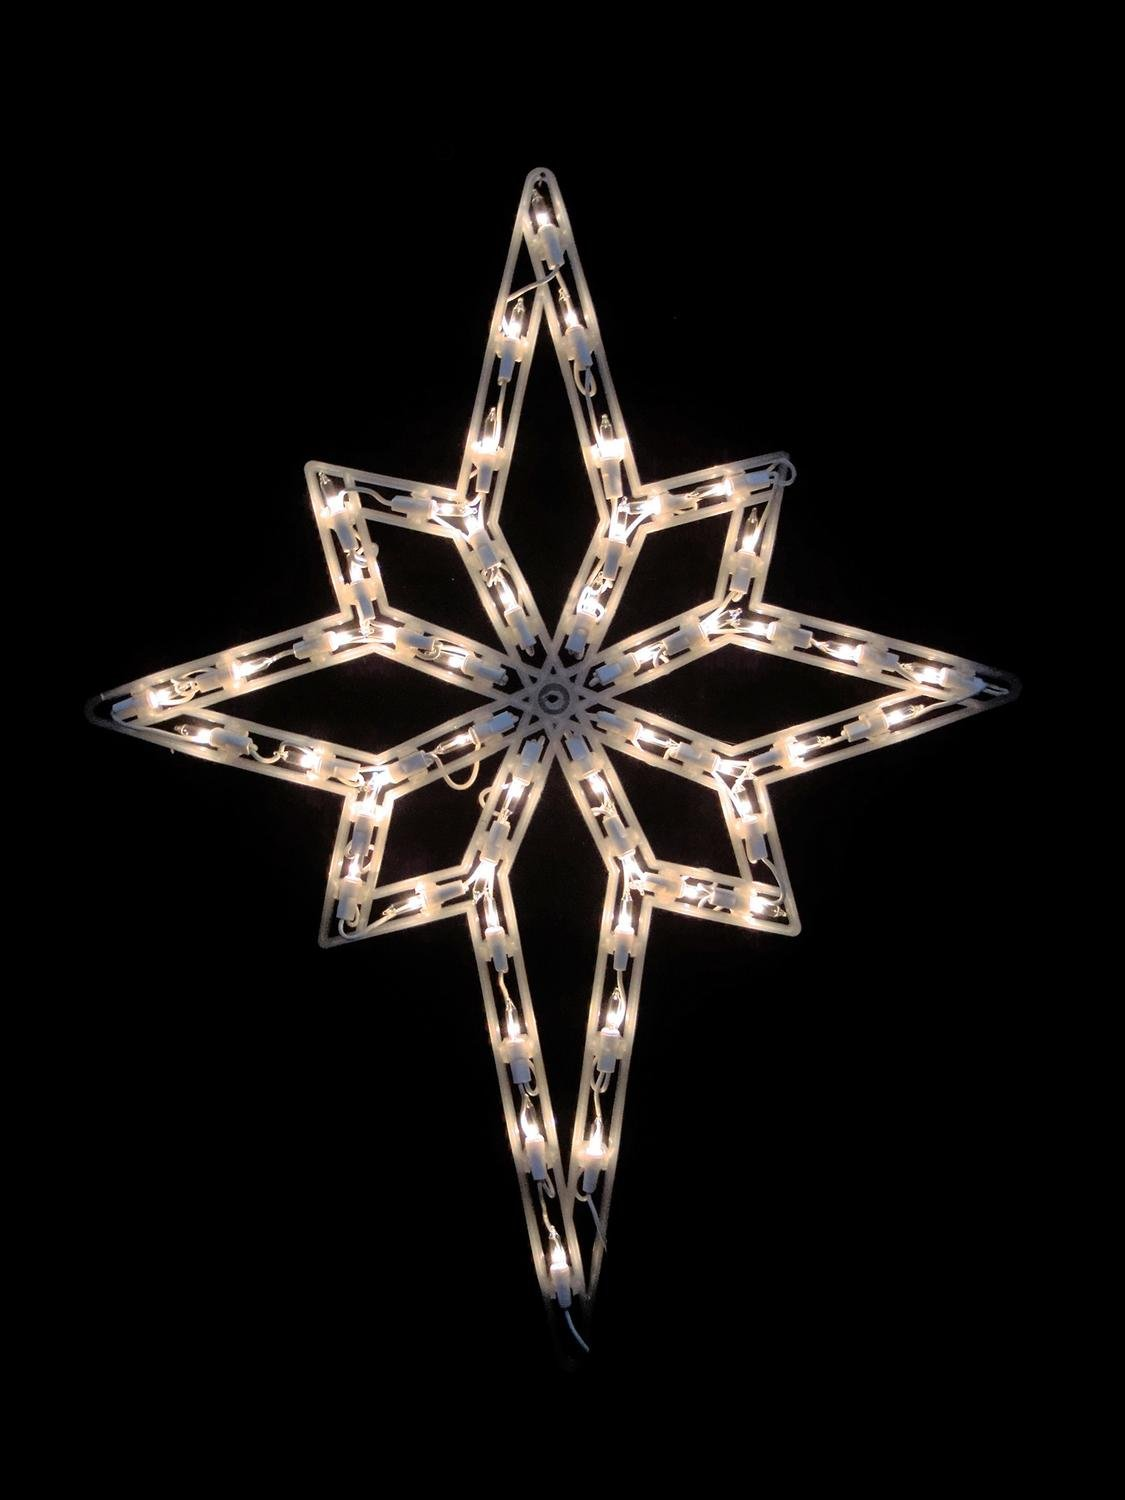 Amazon northlight 18 lighted star of bethlehem double sided amazon northlight 18 lighted star of bethlehem double sided christmas window silhouette decoration home kitchen mozeypictures Choice Image